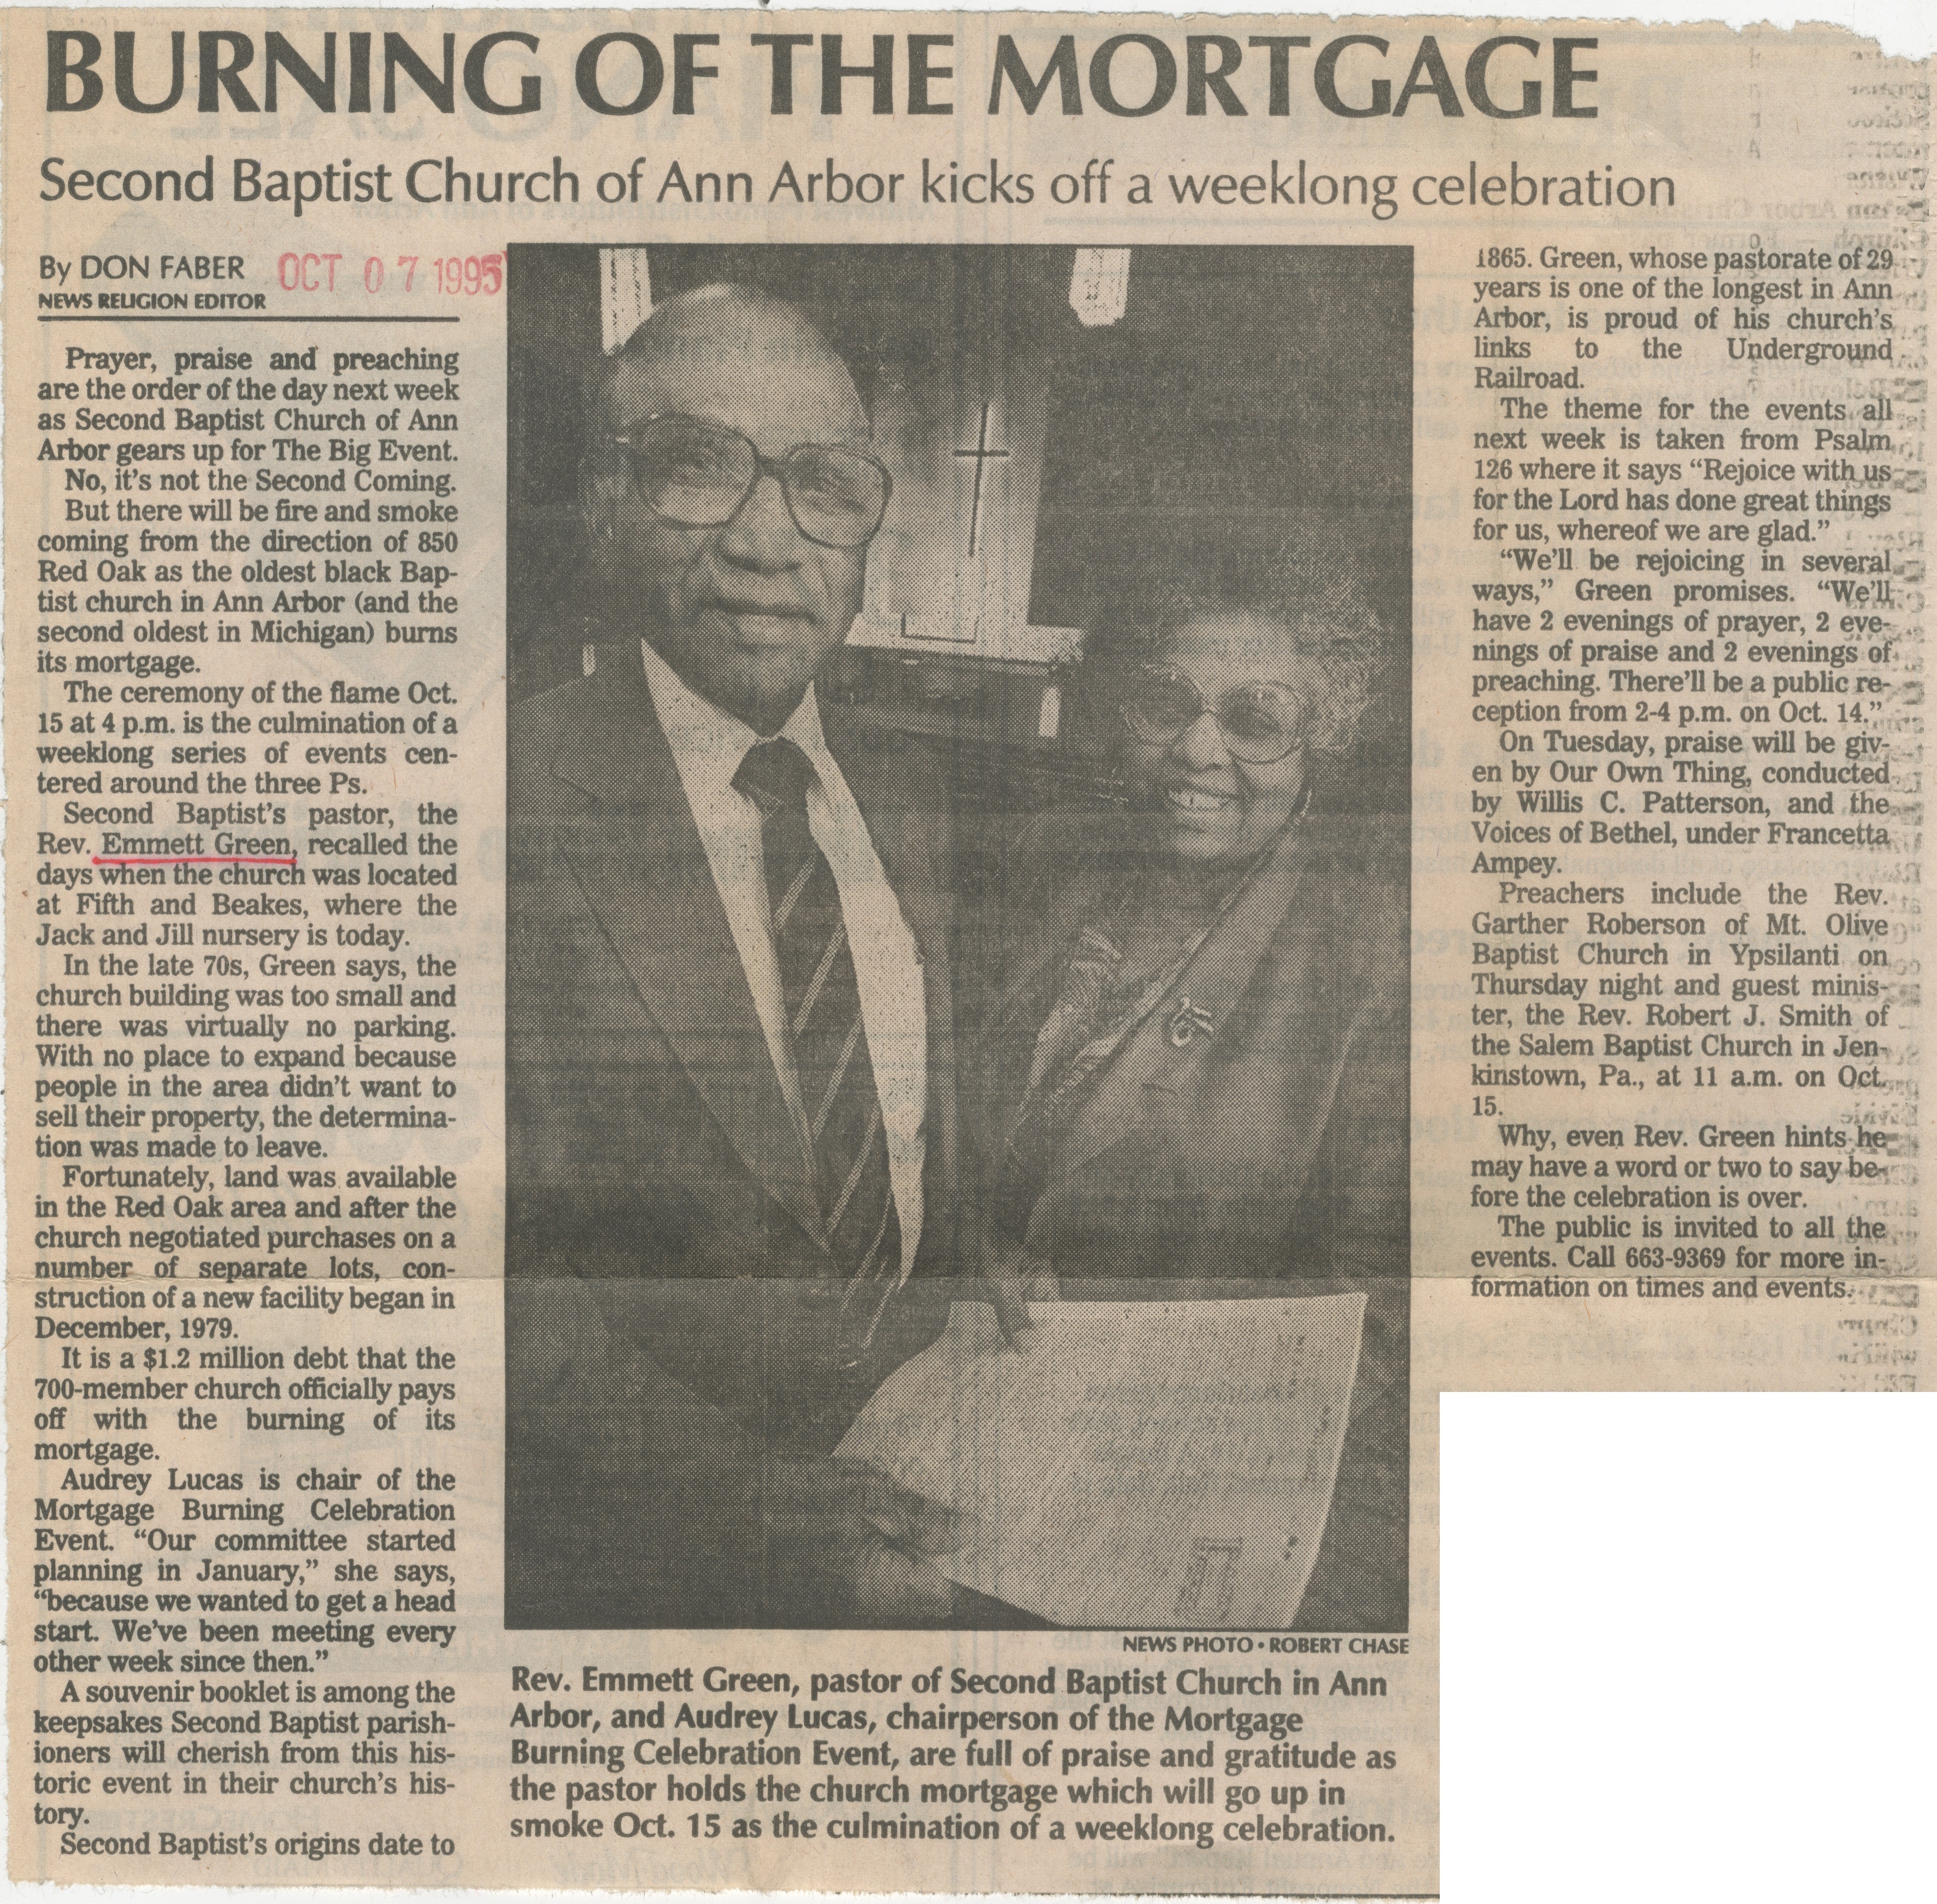 Burning Of The Mortgage image